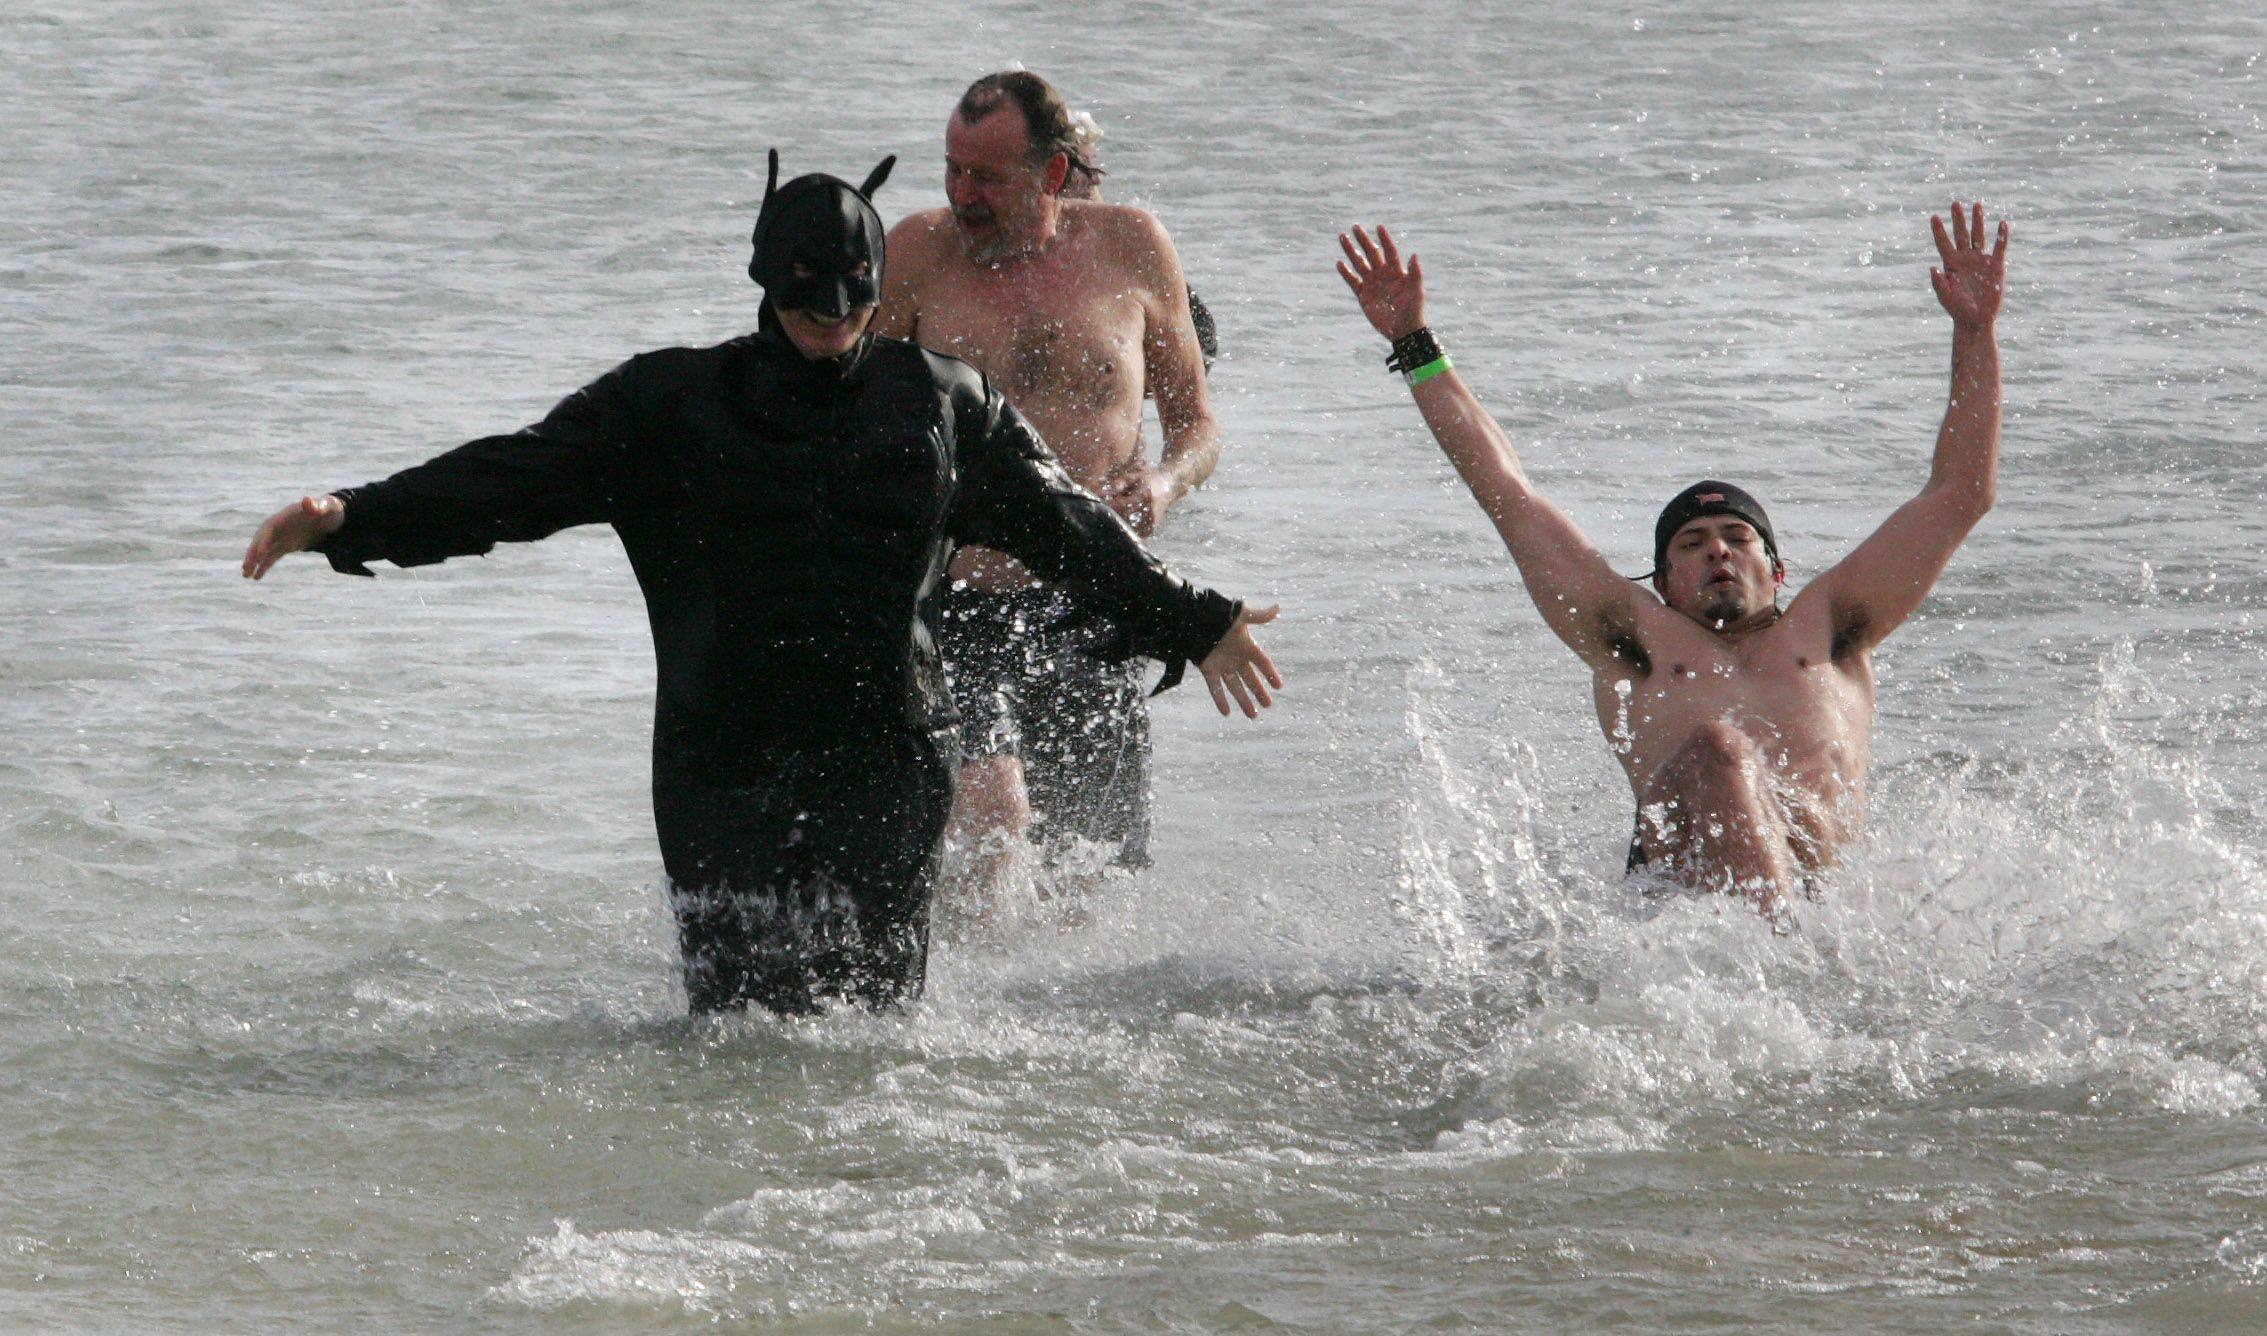 Greg Whipple of Lindenhurst dressed as Batman during the 13th Annual Polar Bear Plunge Sunday in Waukegan. The event benefits Special Recreation Services of Northern Lake County.